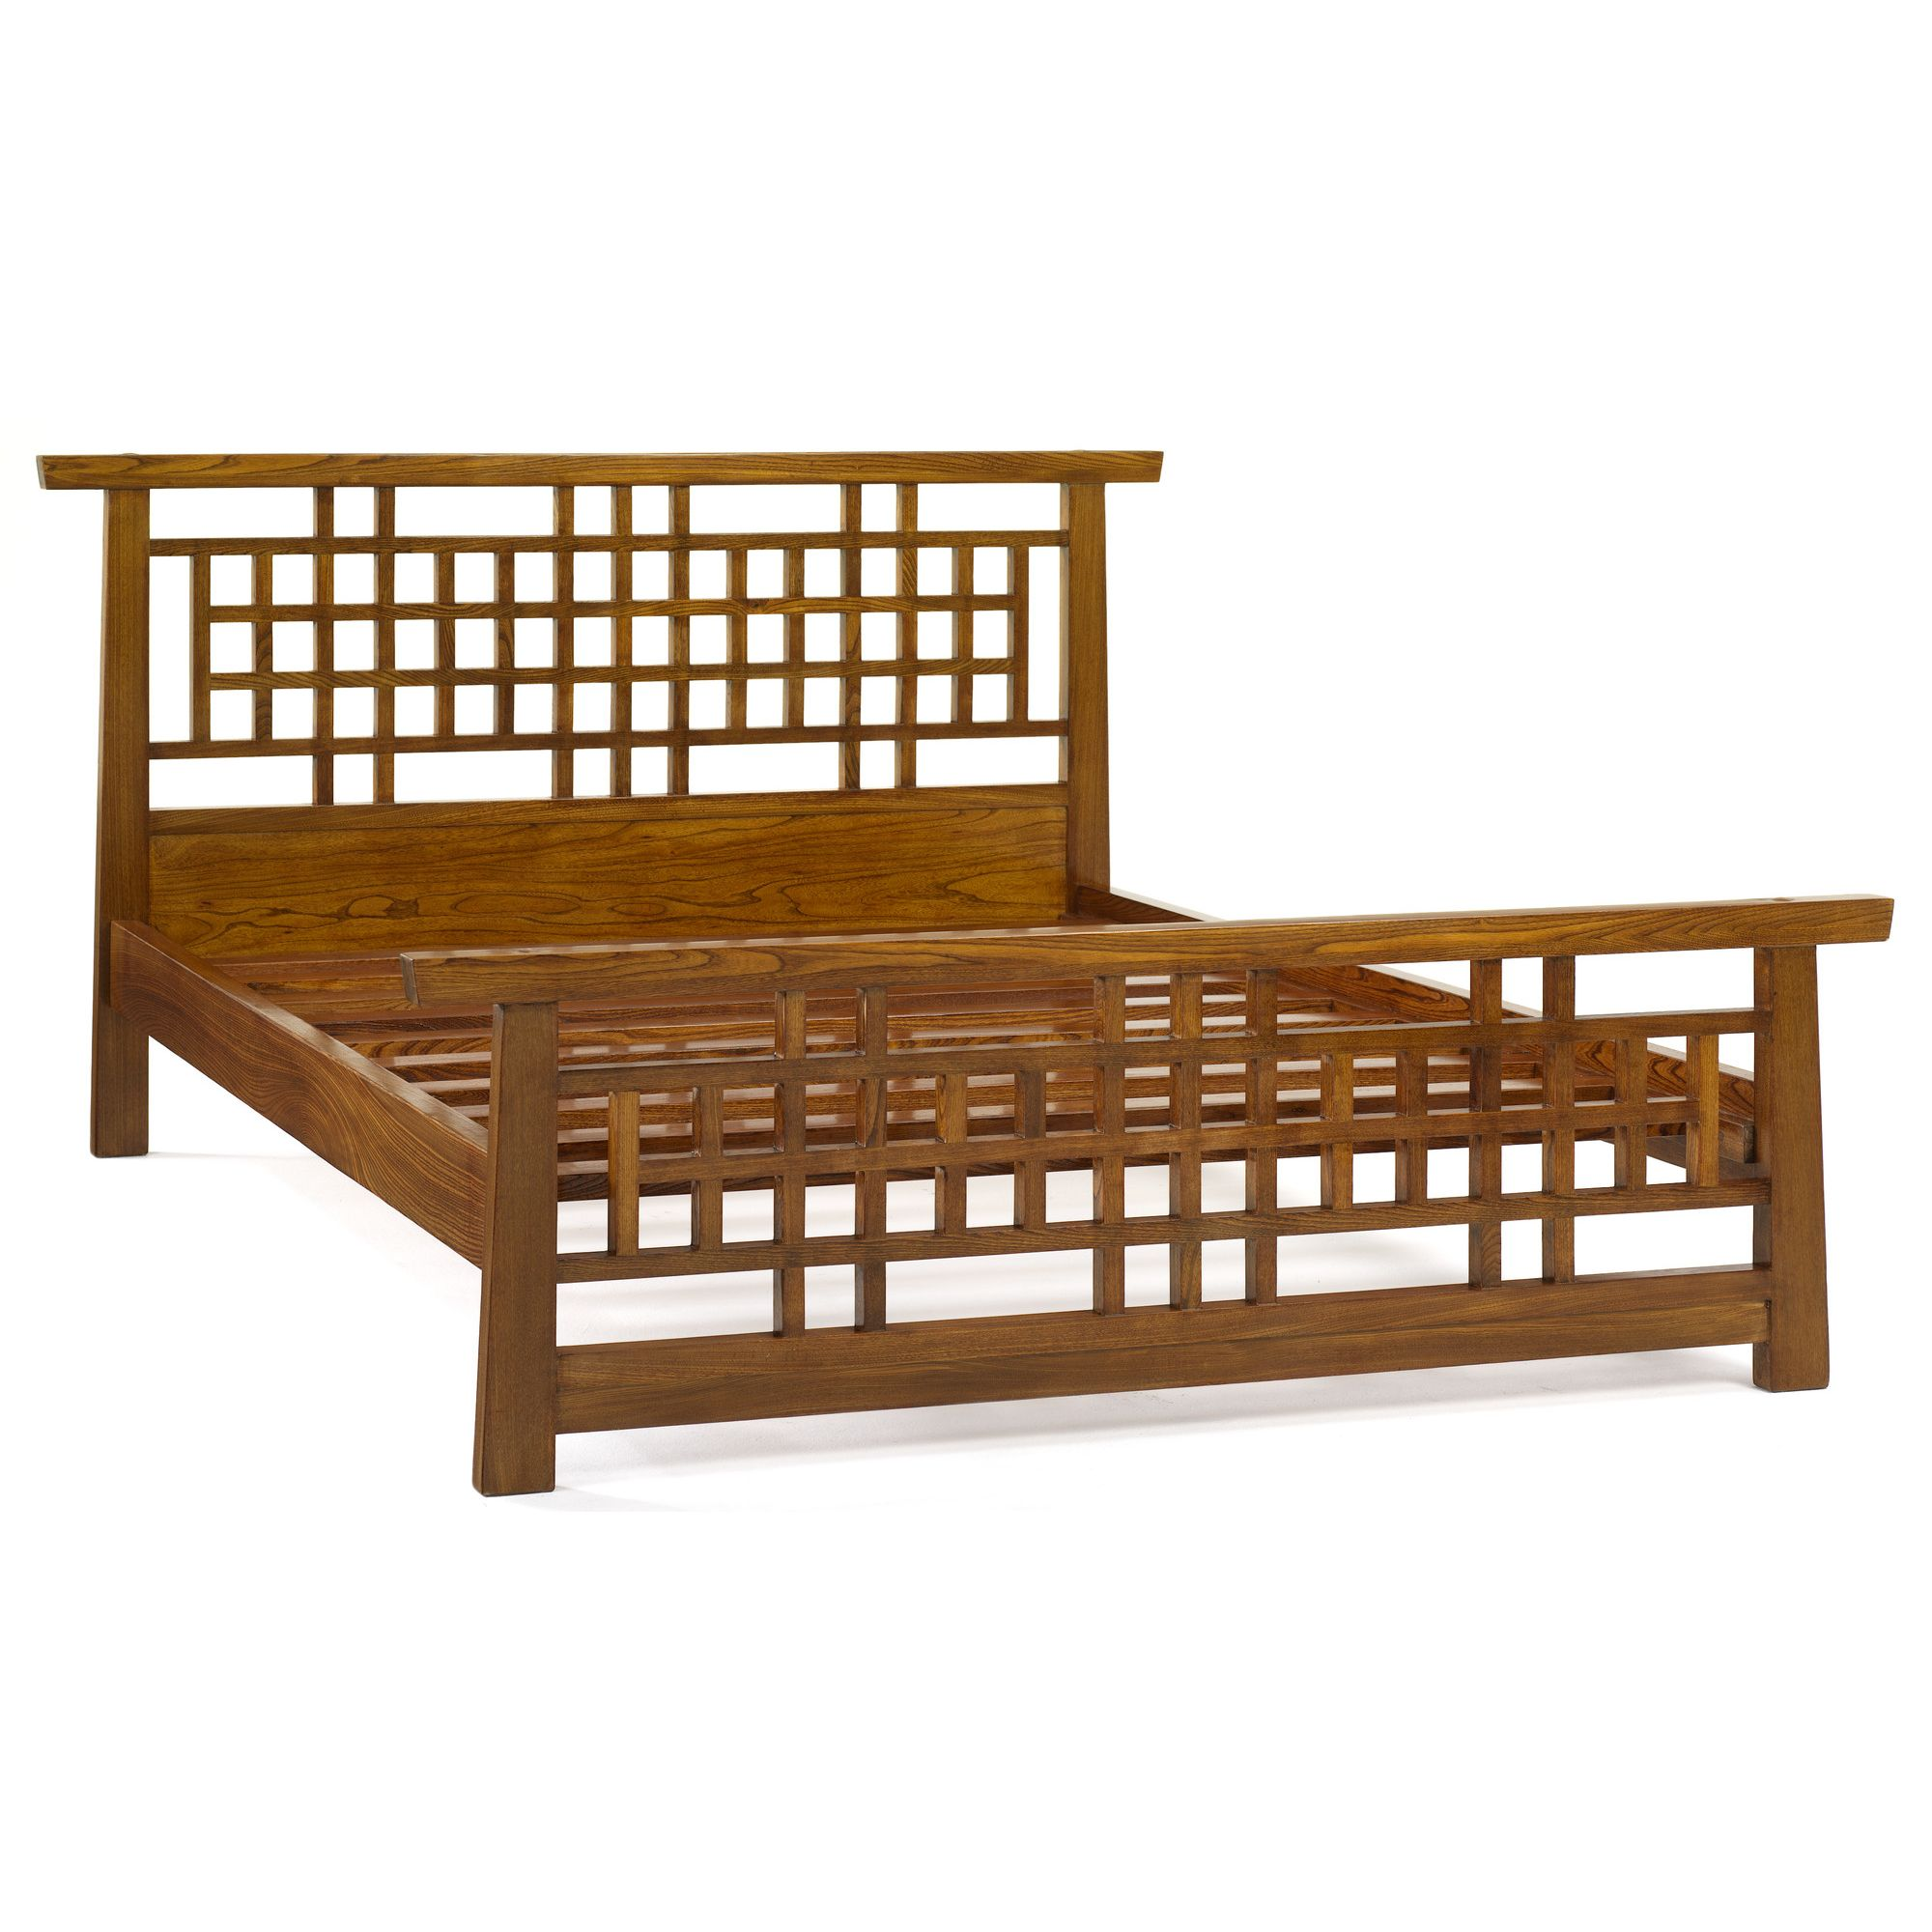 Shimu Asian Contemporary Lattice Bed at Tesco Direct